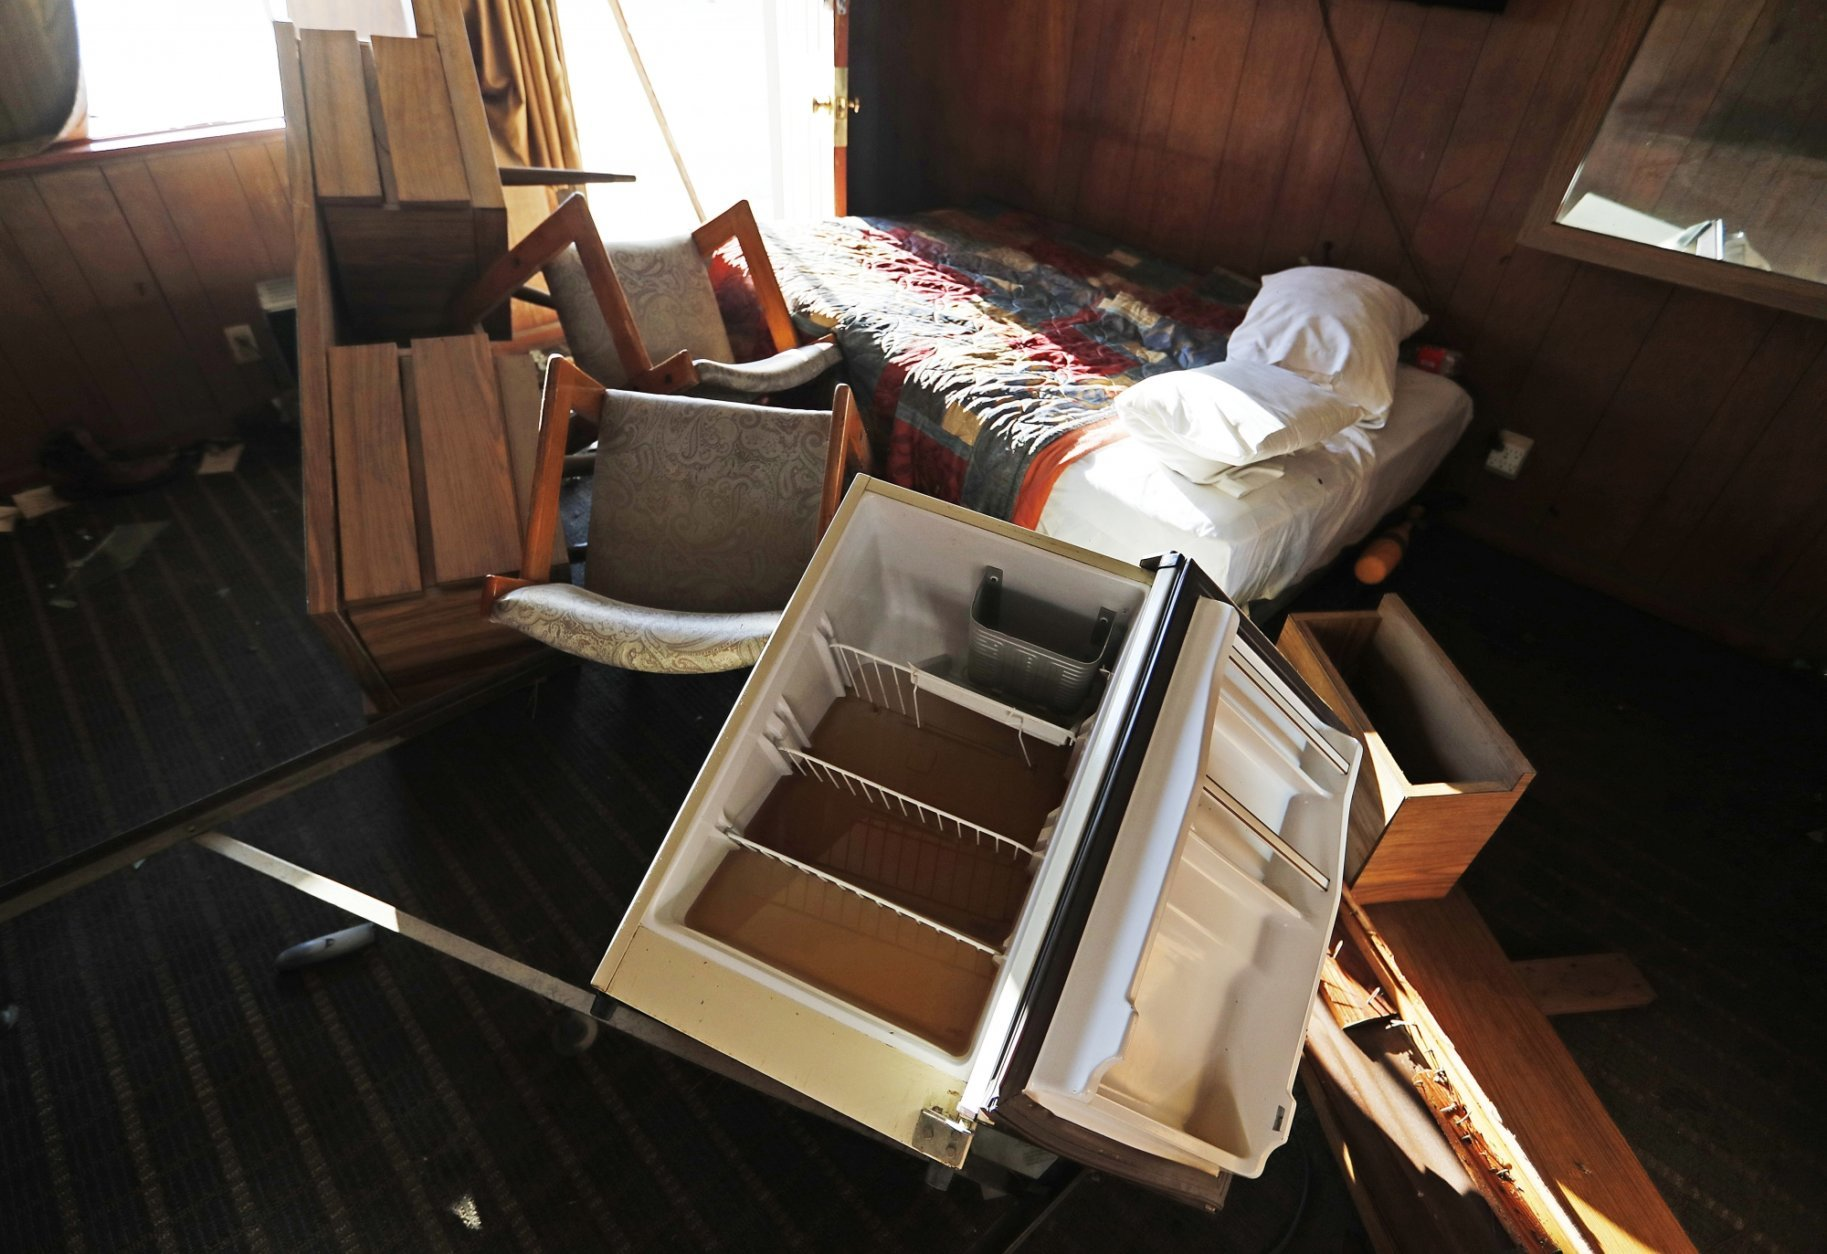 In this Wednesday, Sept. 19, 2018 photo, water sits in a refrigerator laying amongst furniture tossed about from flooding in the Starlite Motel in the aftermath of Hurricane Florence in Spring Lake, N.C. Florence washed away half the rooms at the Starlite Motel ripping away the livelihood of a family that bought it in recent months. (AP Photo/David Goldman)